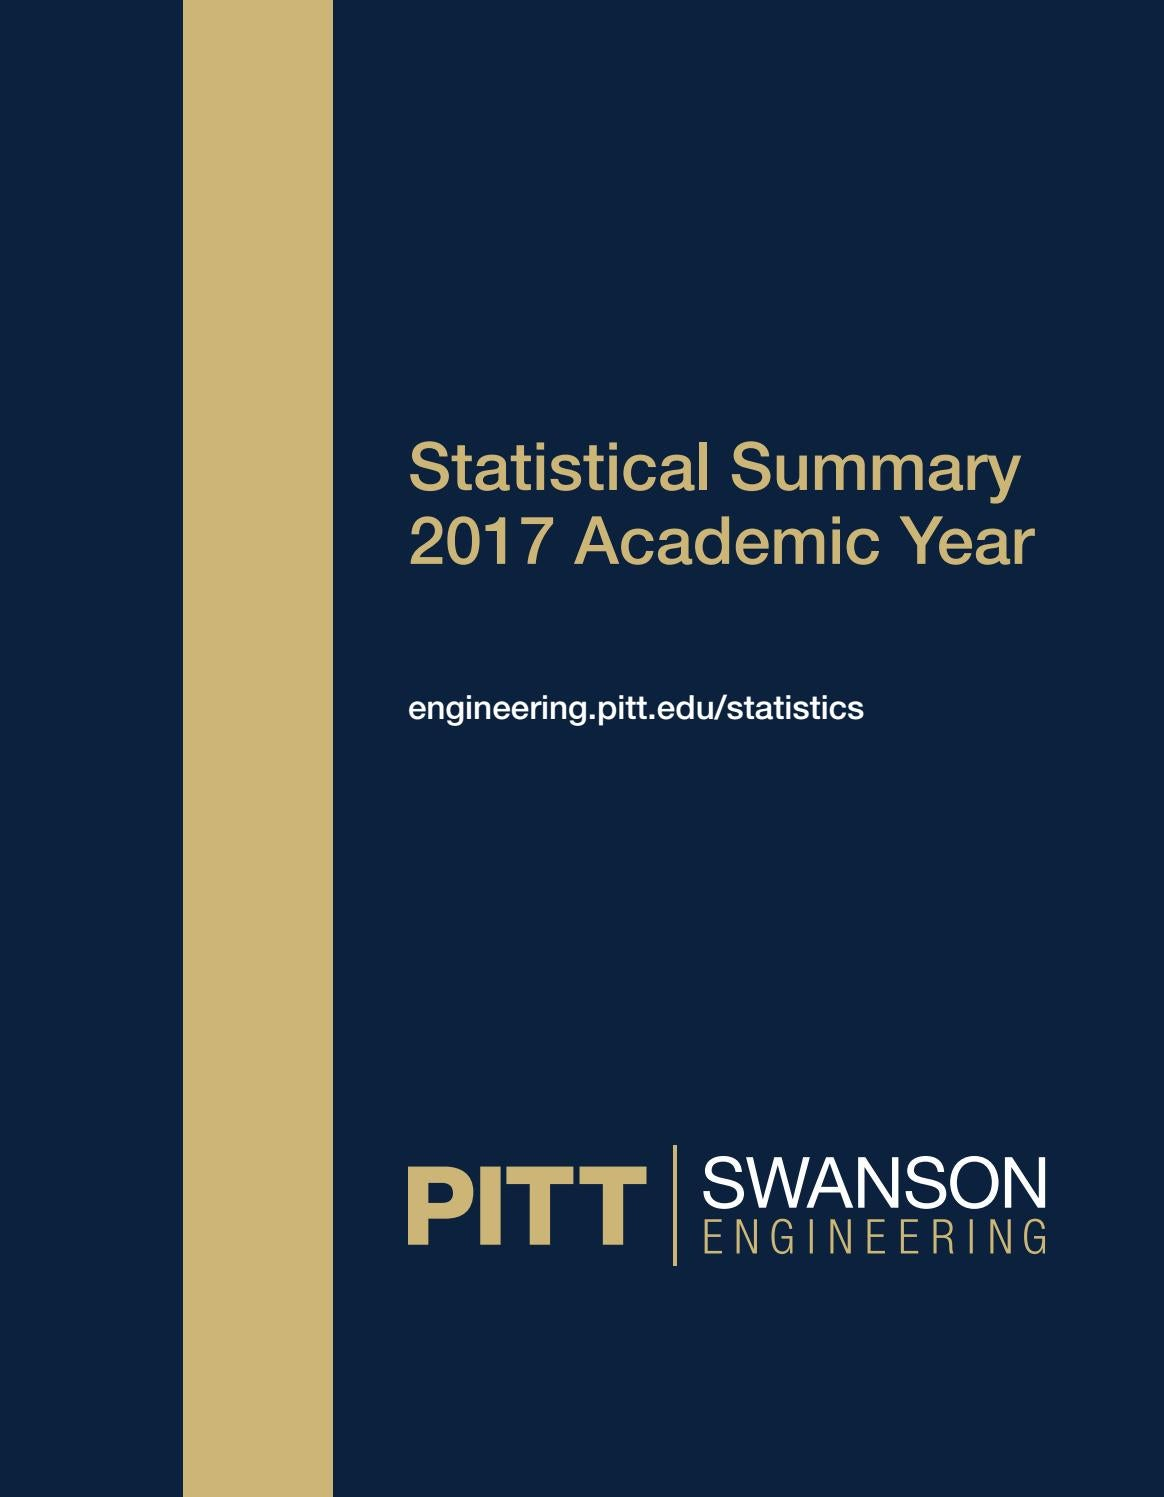 2017 Statistical Summary by PITT | SWANSON School of